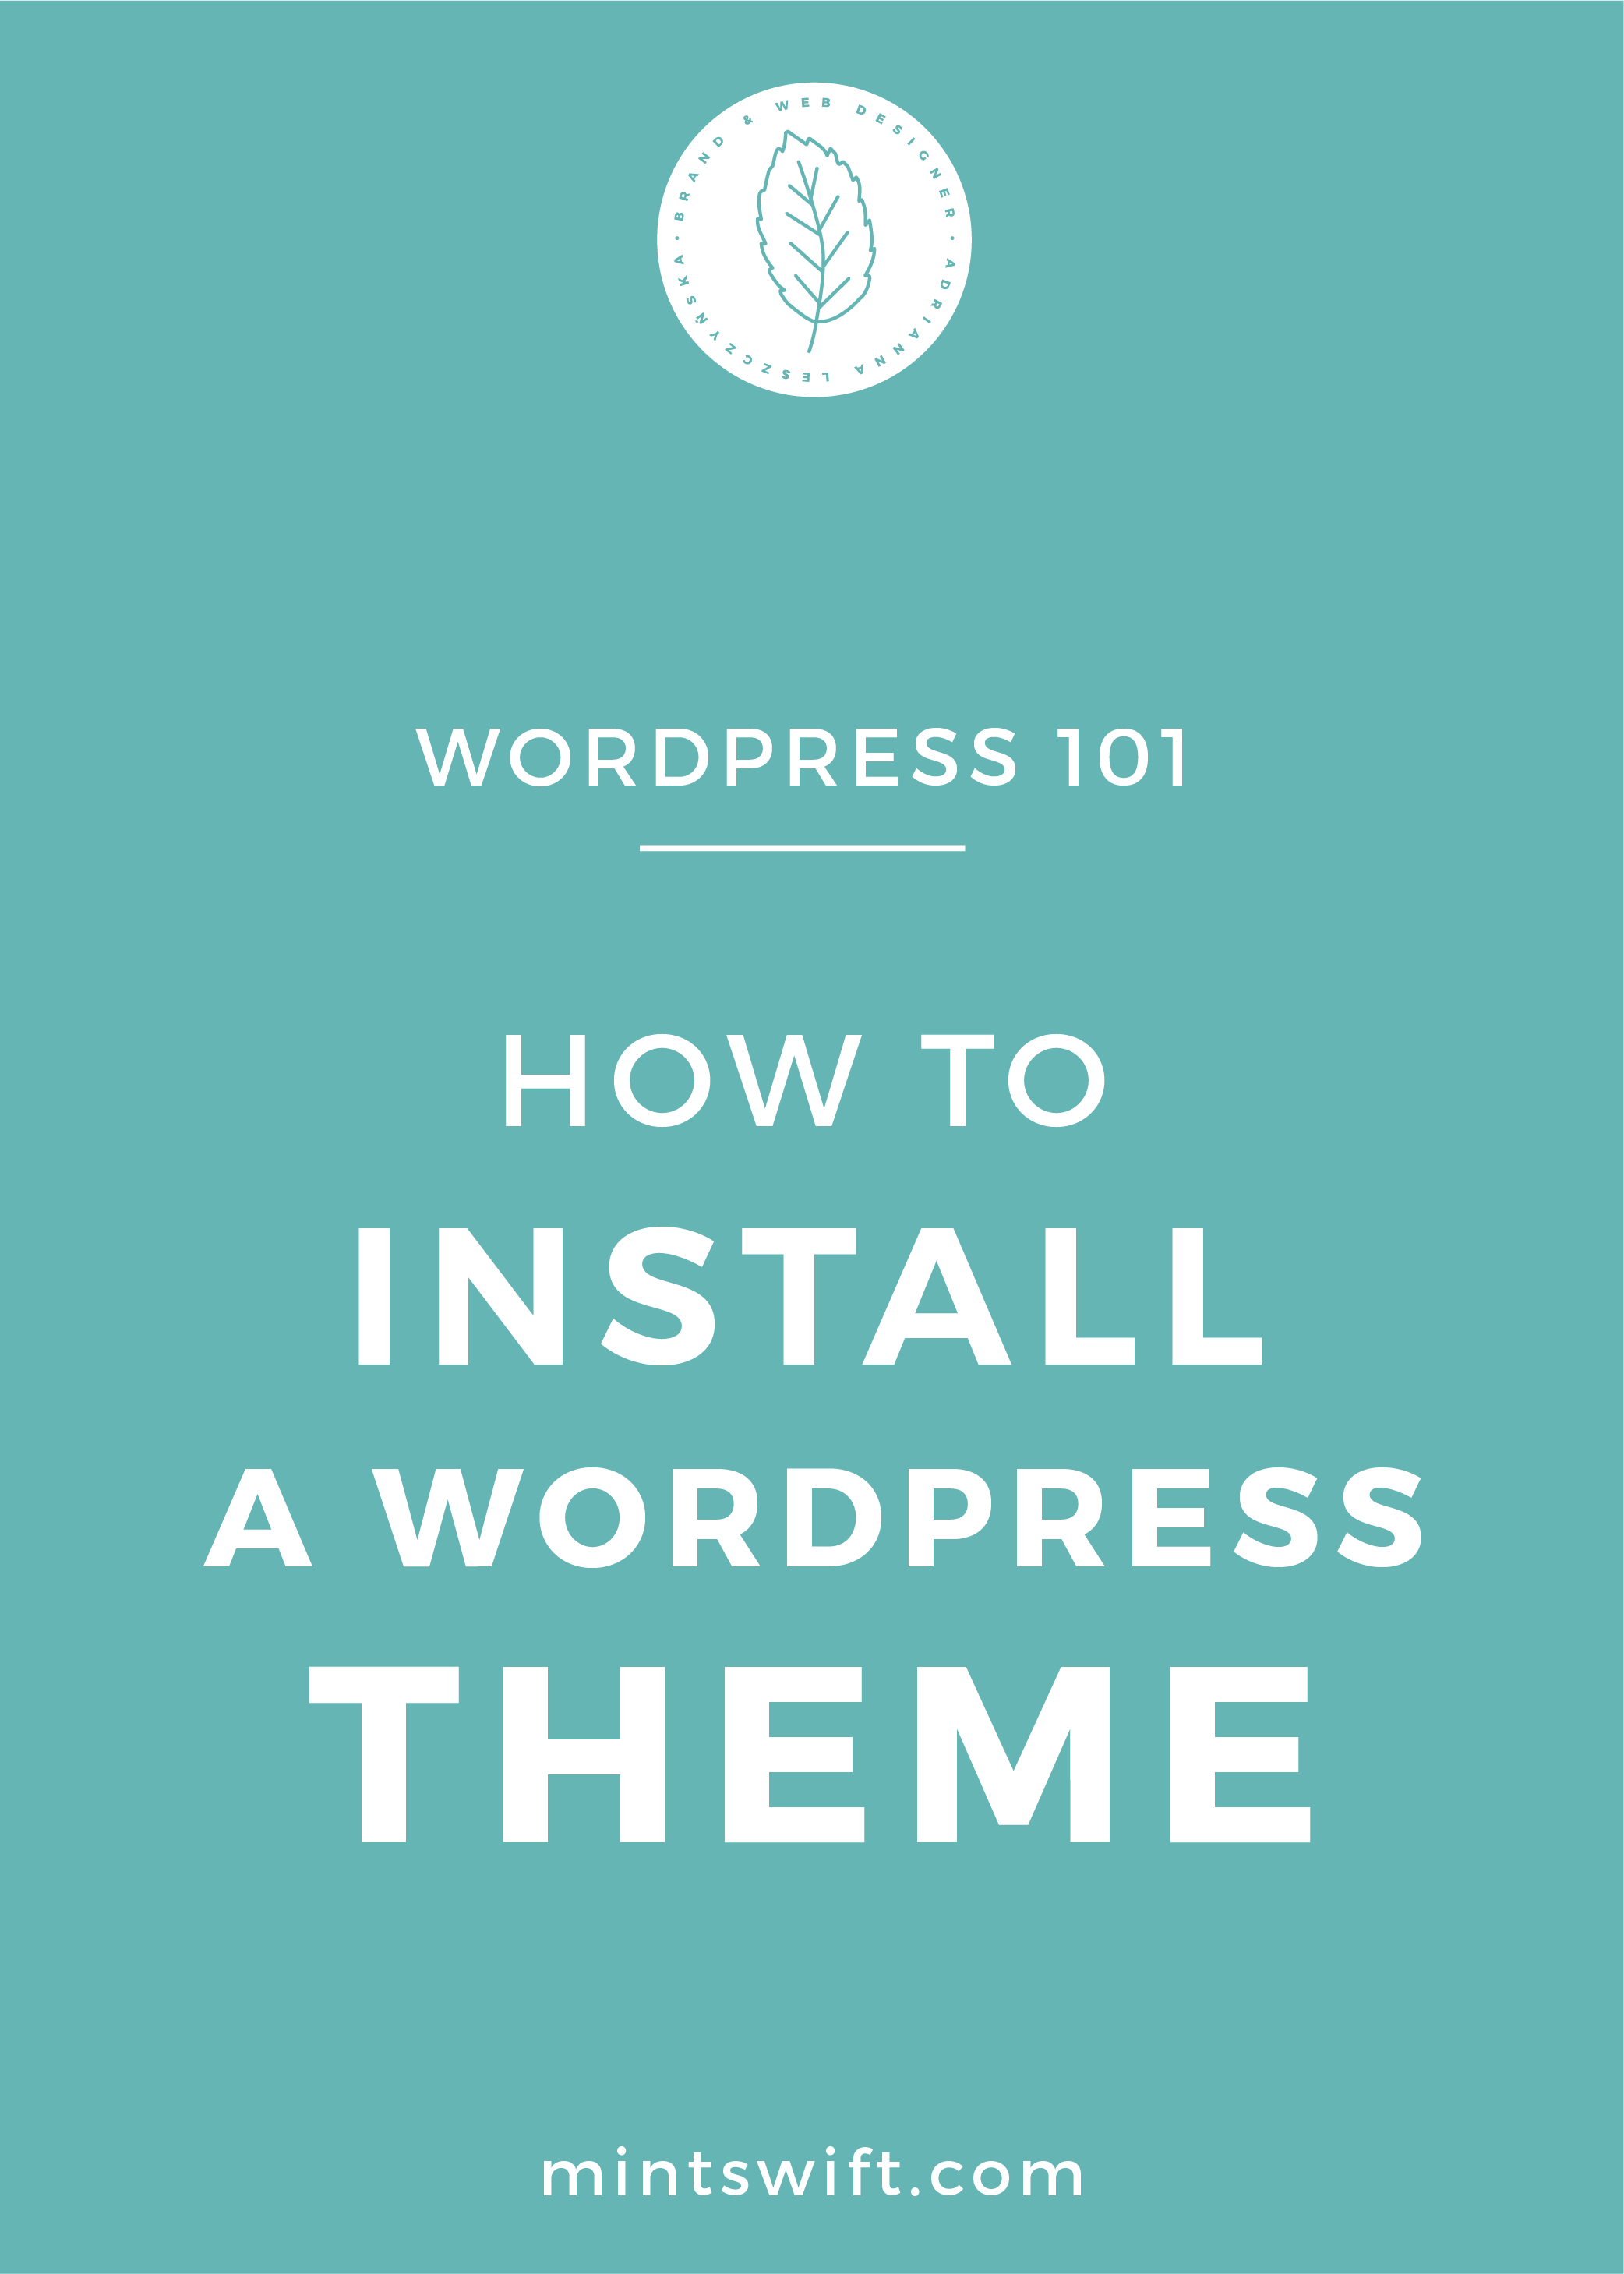 How to Install a WordPress Theme - MintSwift